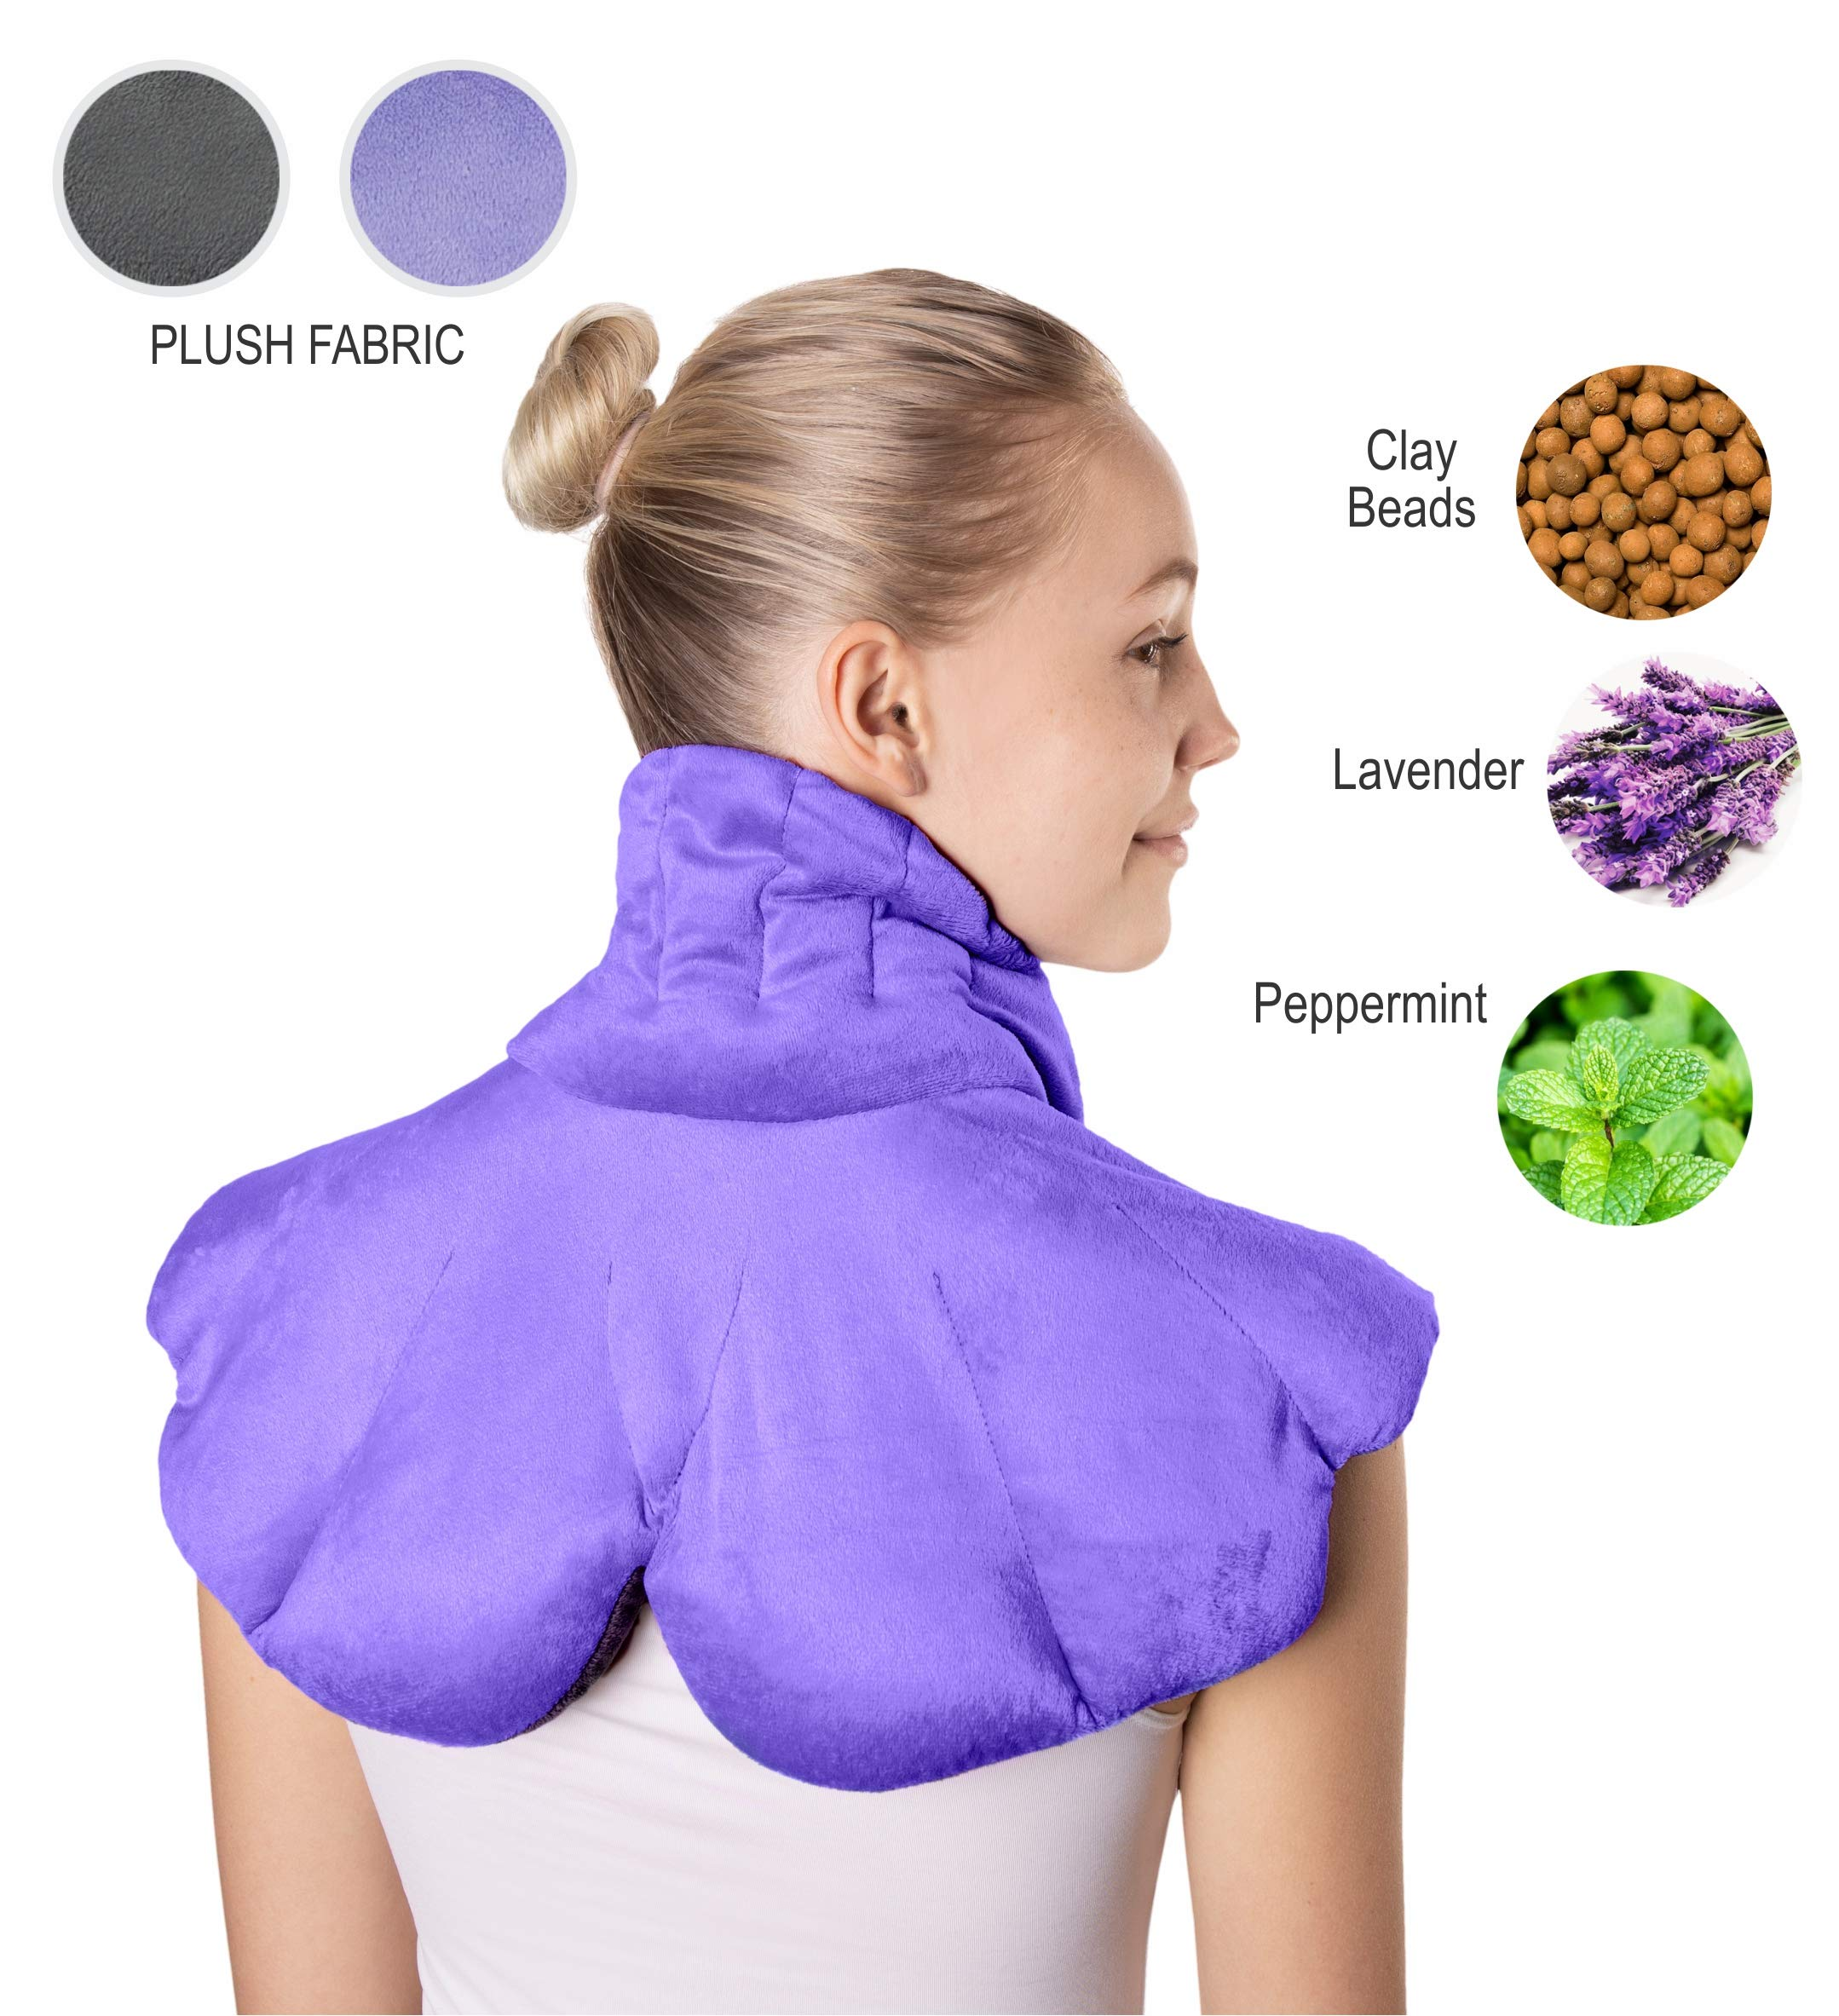 MK Double Sided Deluxe Microwavable Heating Pad for Neck and Shoulders | Shoulder Heating Pad | Neck Heating Pad | Microwavable Heating pad | Heated Neck Wrap | Neck Wrap Microwavable | Heating pad by Merchants Key